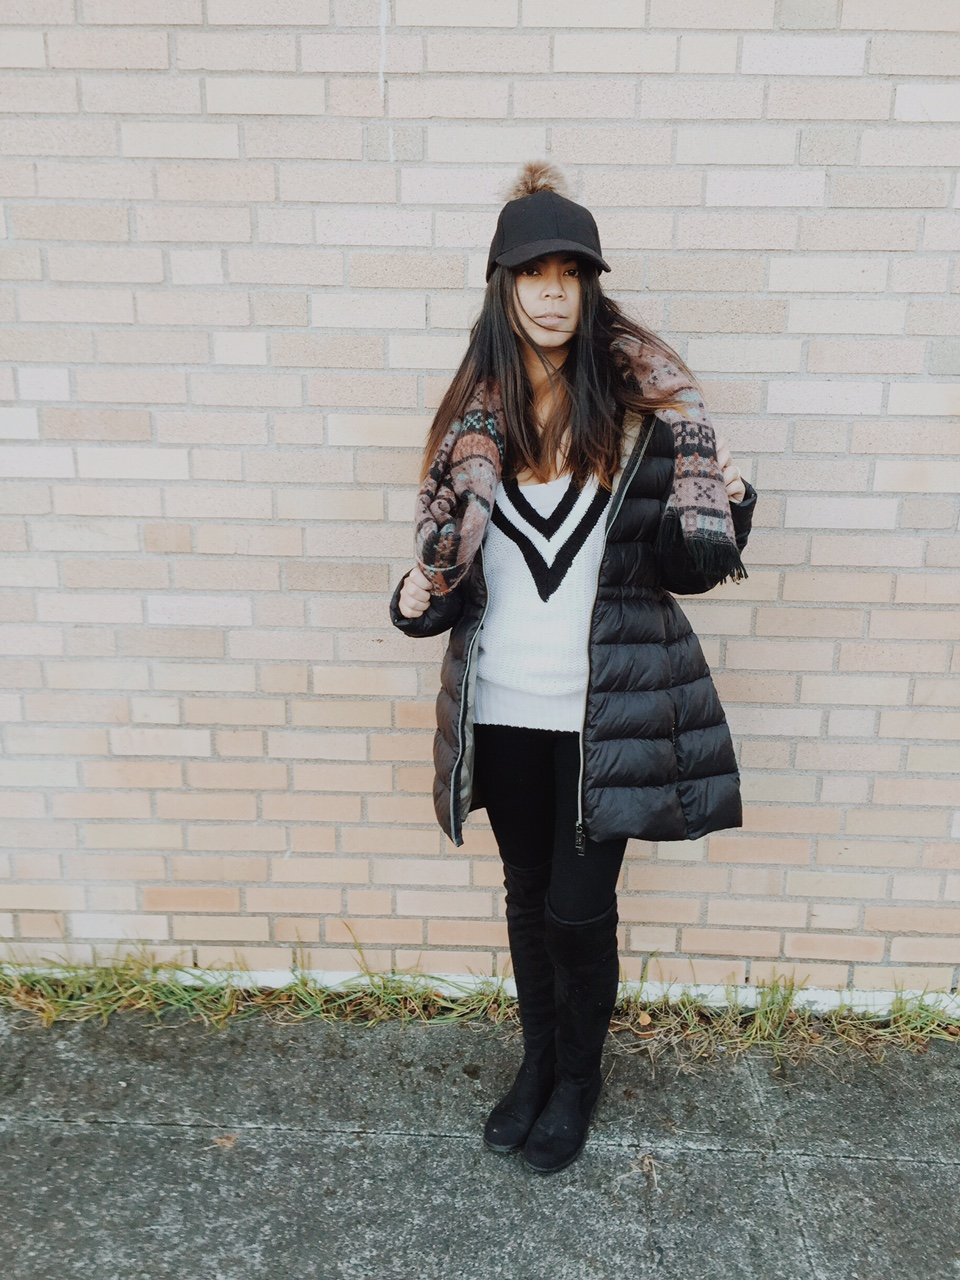 ootd, winter wear, pom pom hat, black knee high boots, aztec print scarf, v neck sweater, portland fashion blogger, fblogger, stylishbloggers,